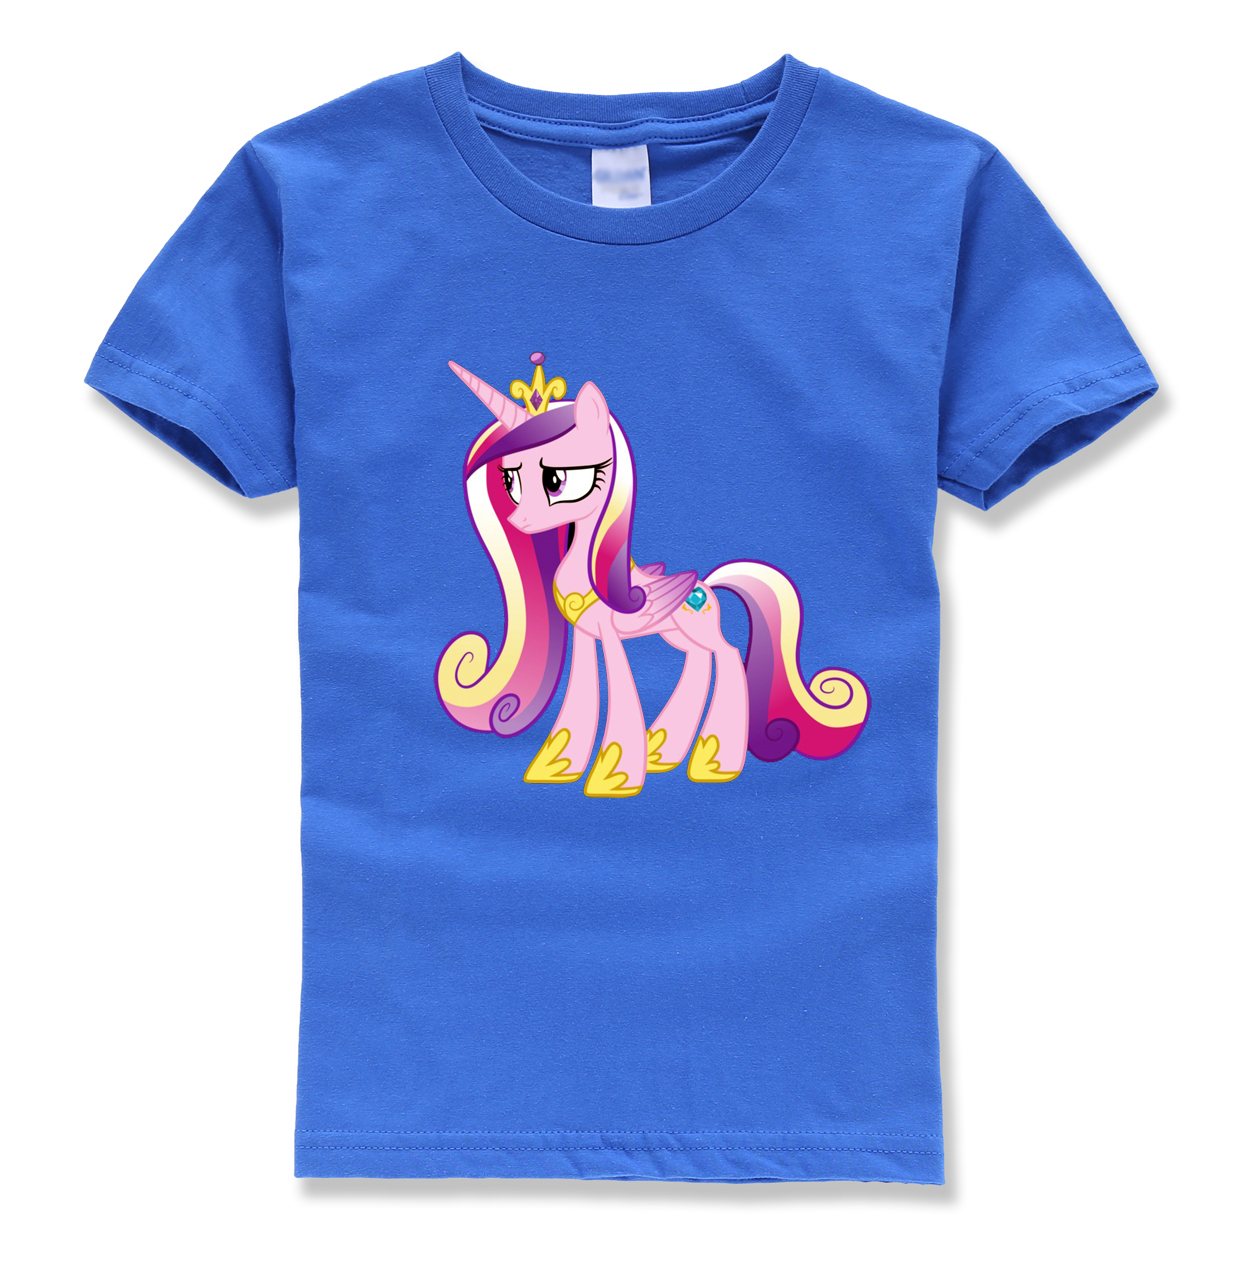 unicorn printing pink tops brand homme casual t shirts kids horse t shirts streetwear summer 2018 new style color boys girls top new style 468 colors carousel screen printing machine for t shirts